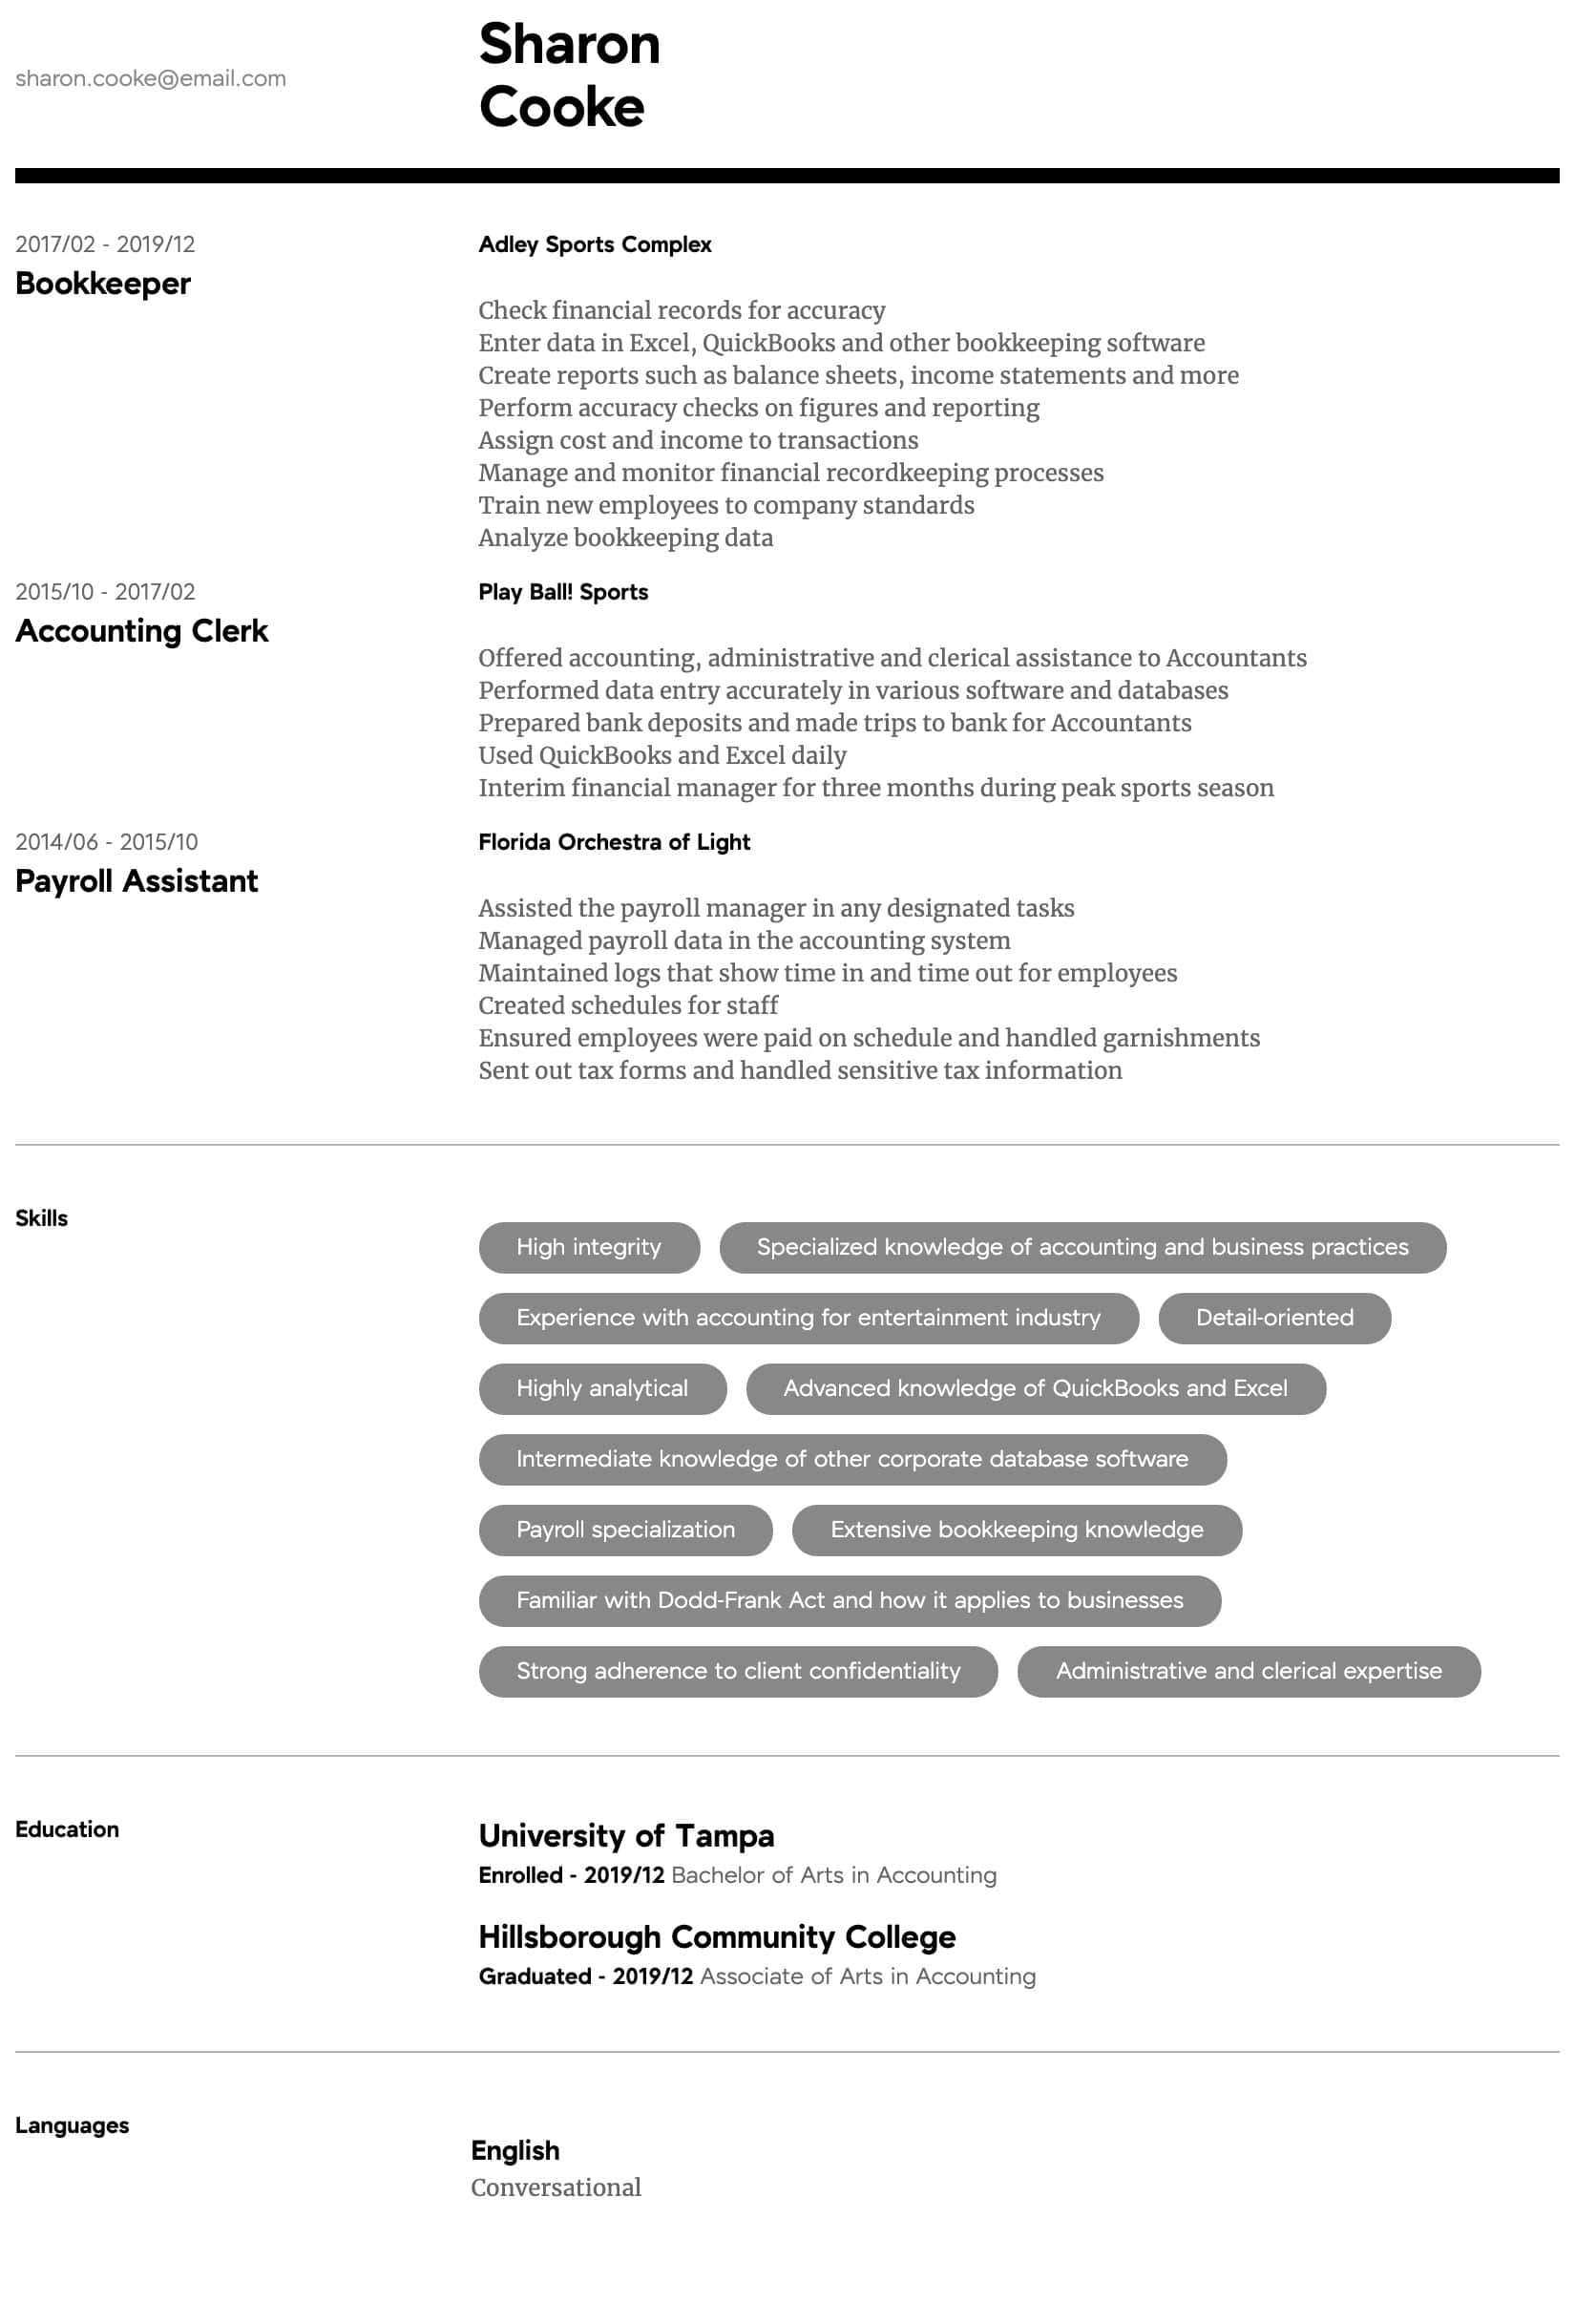 accountant resume samples all experience levels accounting job skills intermediate Resume Accounting Job Skills Resume